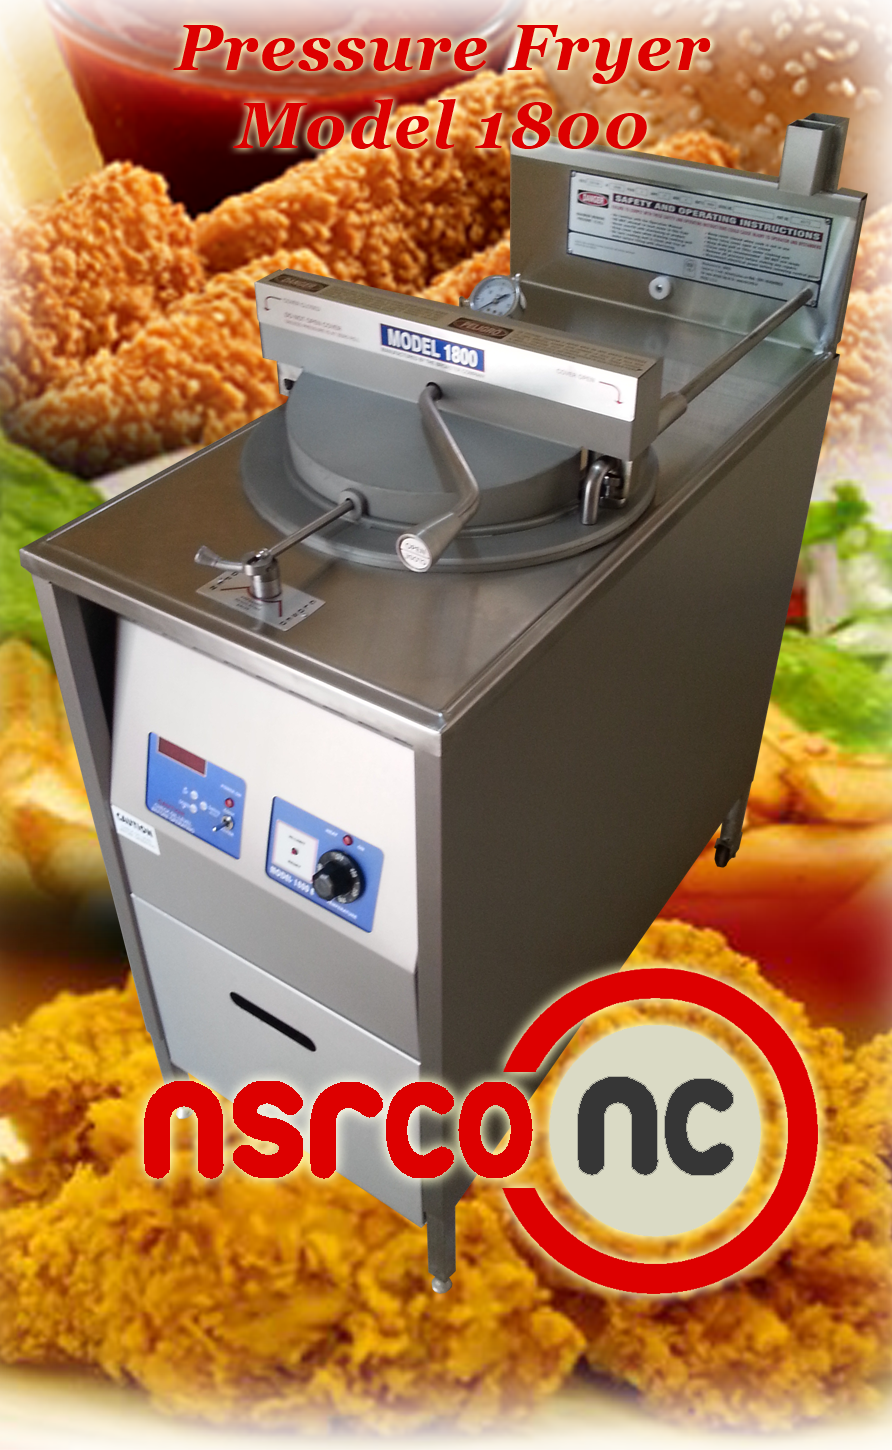 prssr fryer 1800 corner view